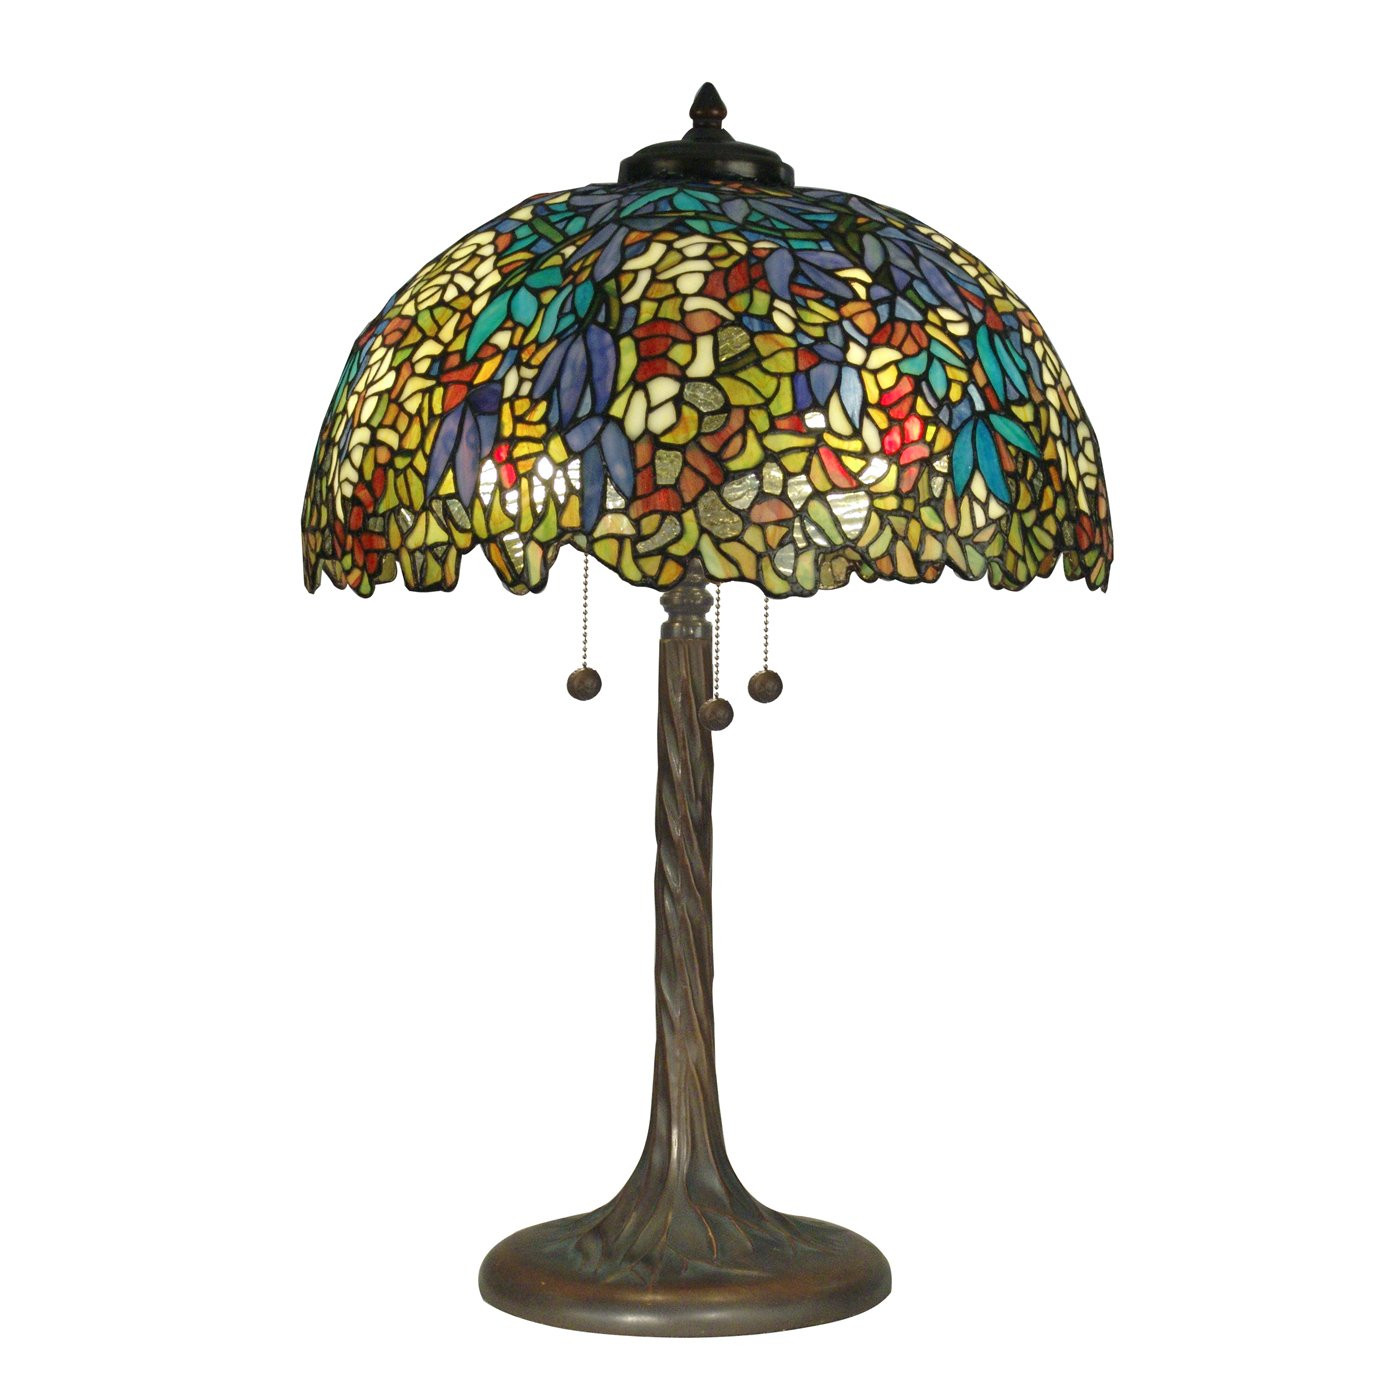 Antique Tiffany Lamps Awesome Dale Tiffany Tt 3 Light Table Lamp Antique Verde Of Amazing 47 Photos Antique Tiffany Lamps